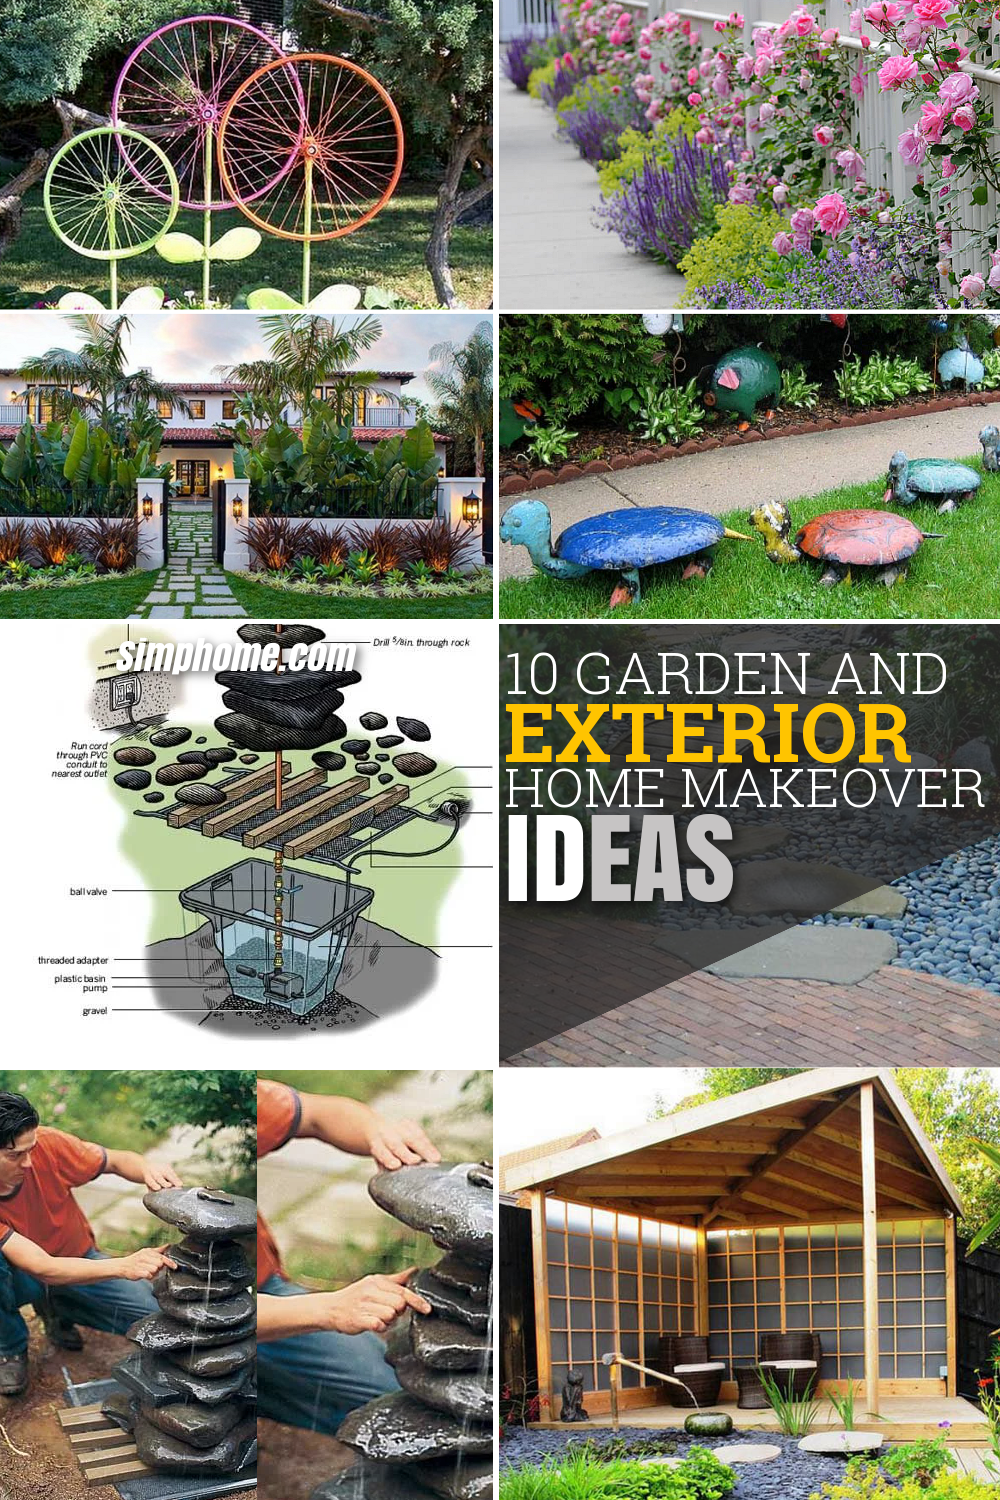 10 Garden and Exterior Home Makeover Ideas via simphome Long Pinterest image